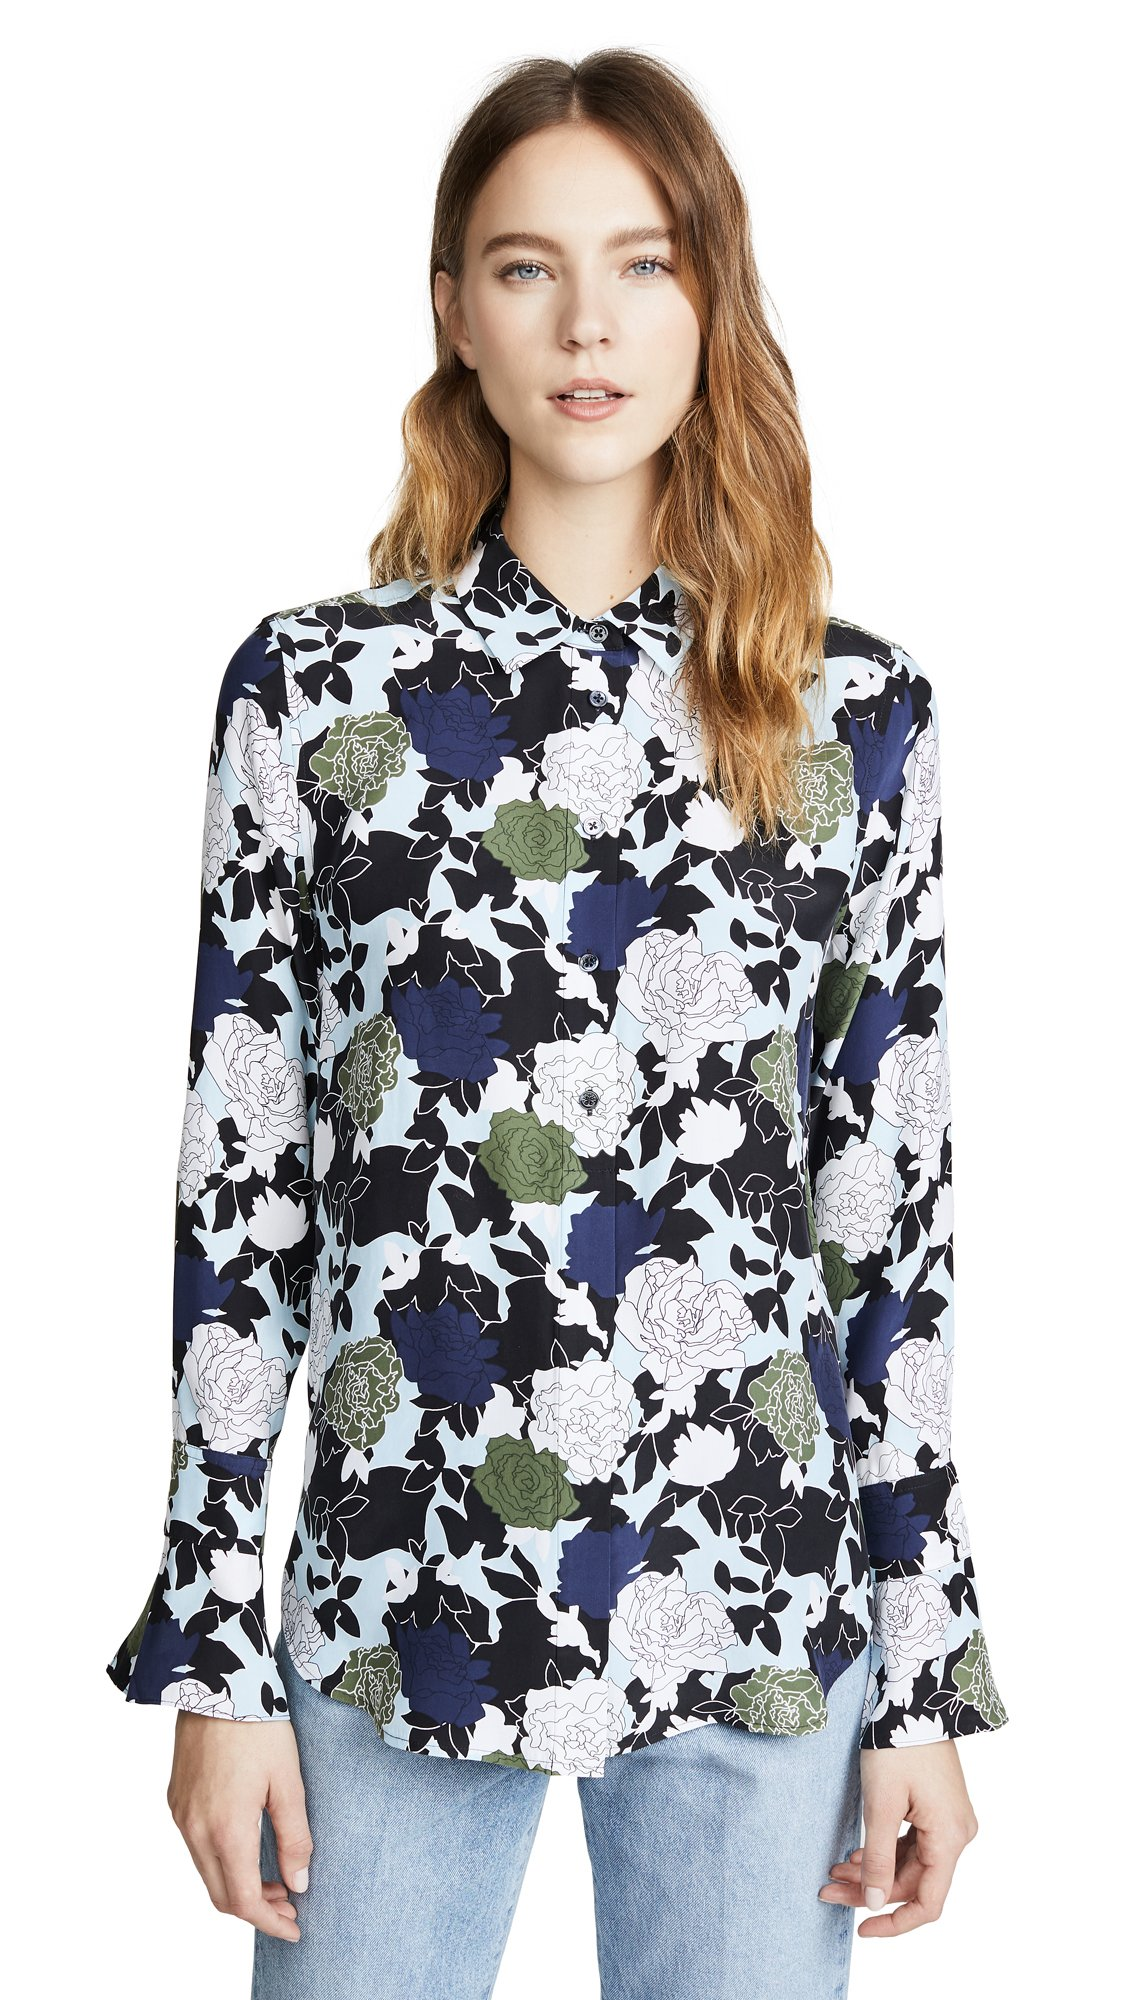 Equipment Women's Floral Noir Printed Daphne Top, Cool Breeze Multi, Extra Small